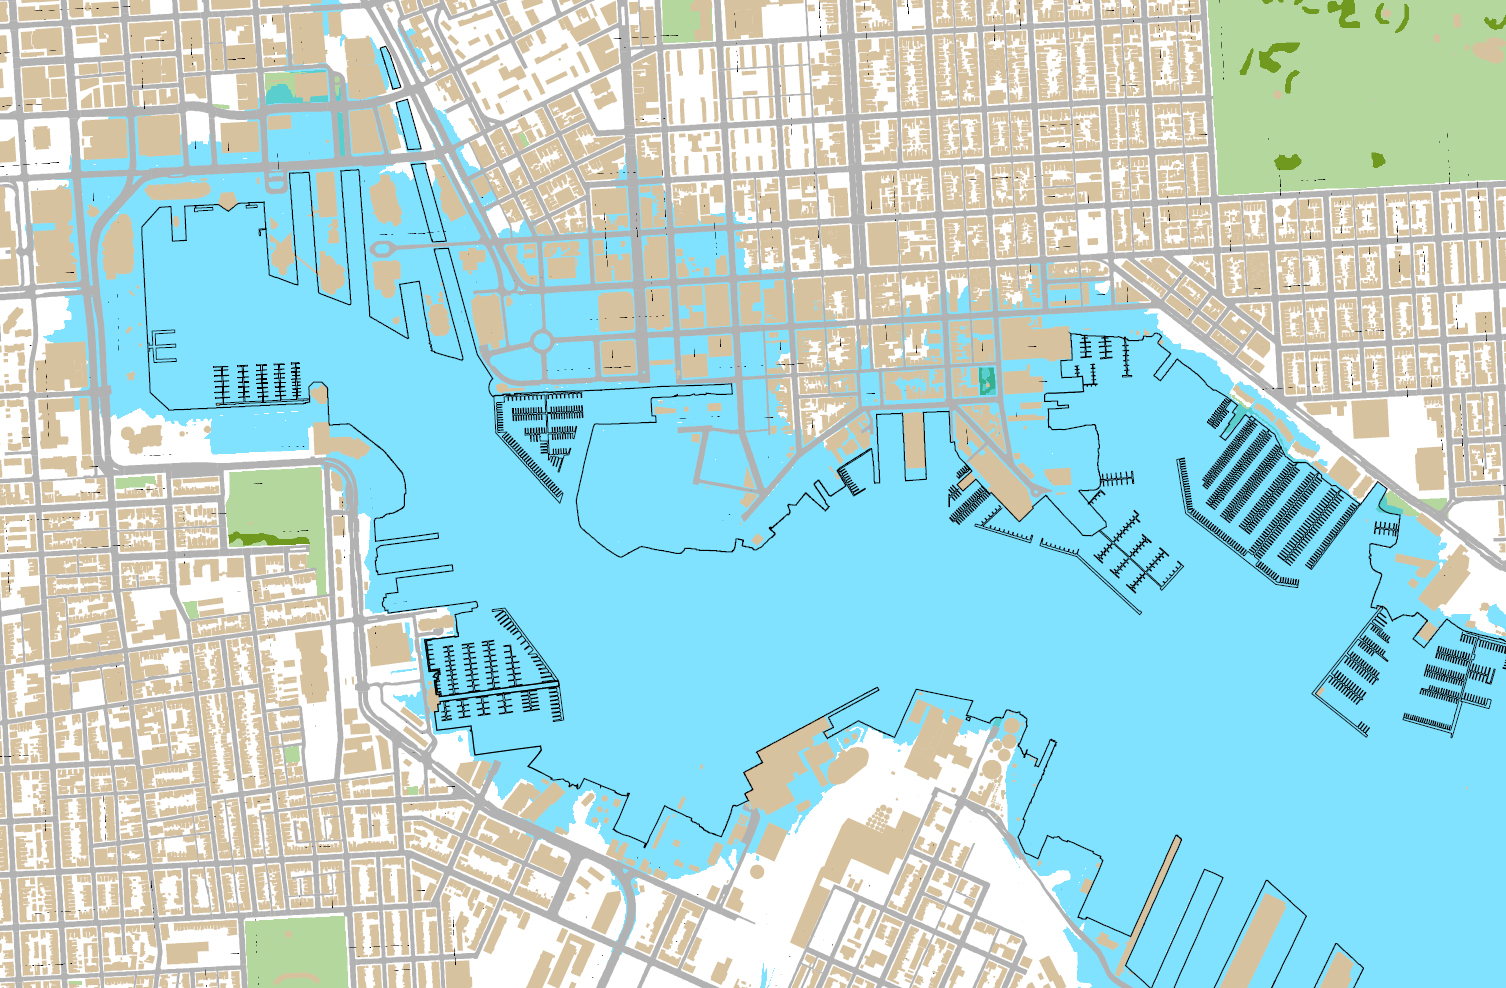 isabel flooding around the baltimore inner harbor beyond the black usual shore lines source baltimore city dp3 website